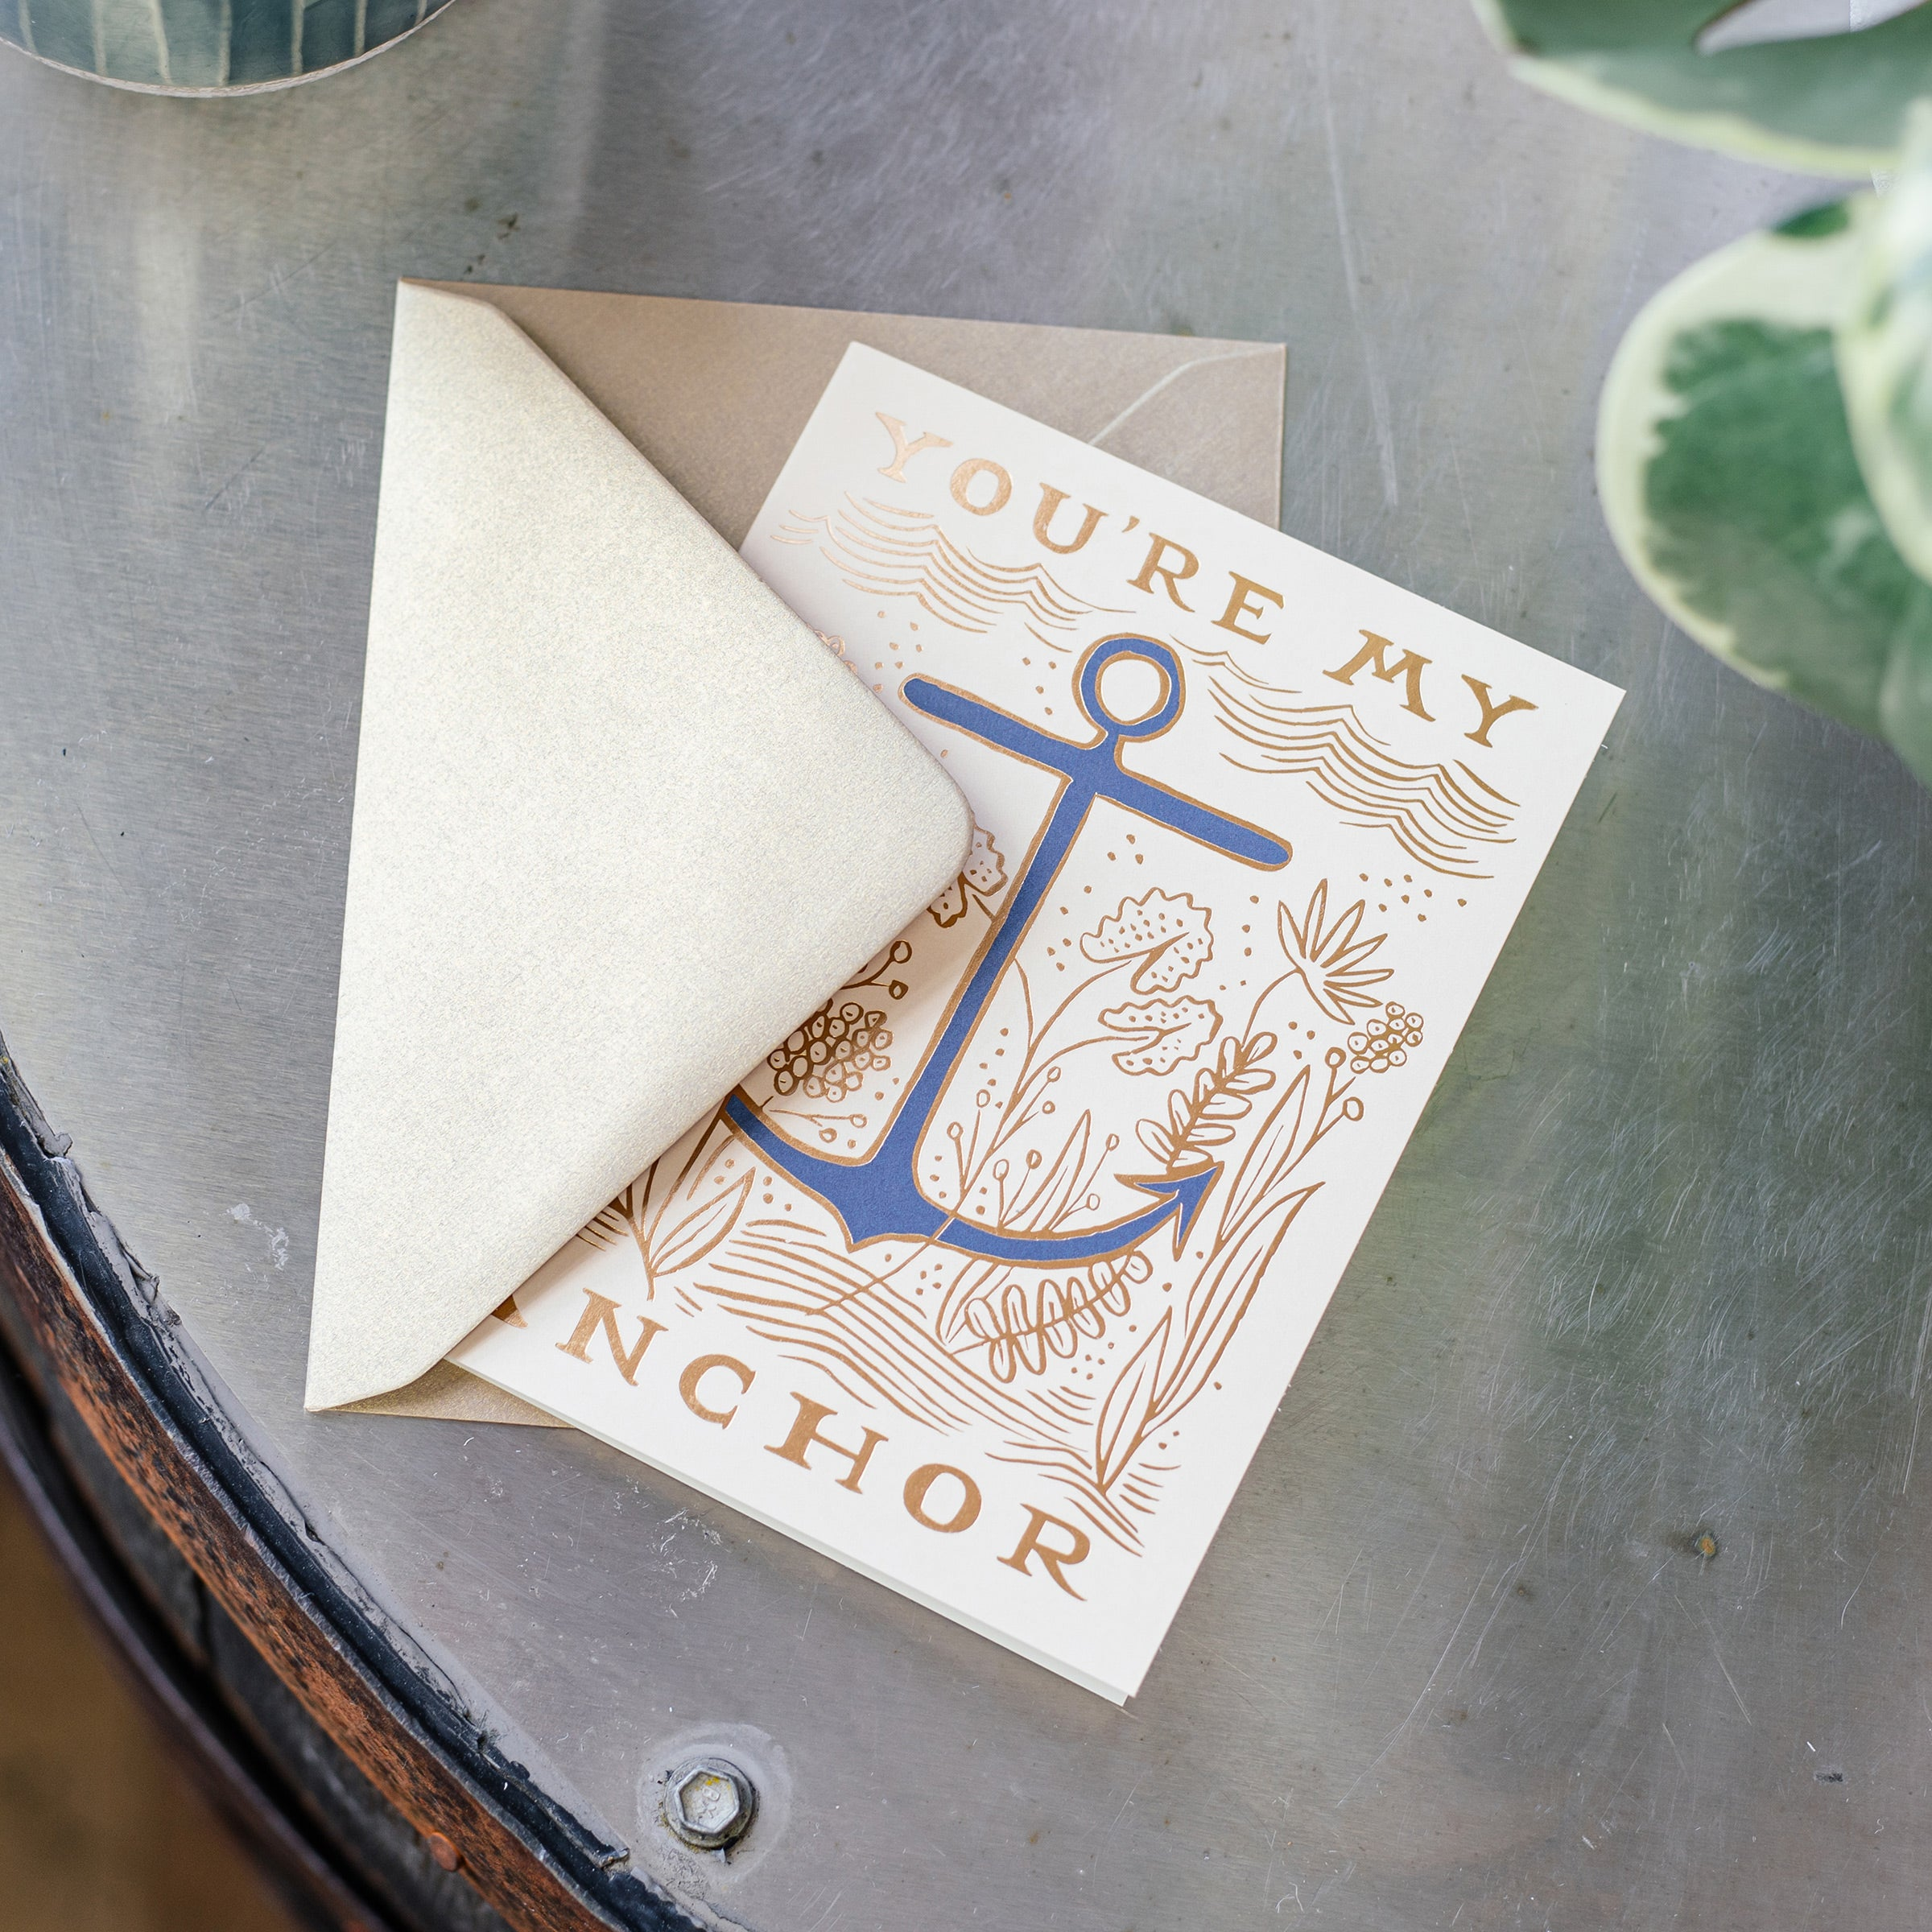 'You're My Anchor' Greetings Card — The Tetley Shop